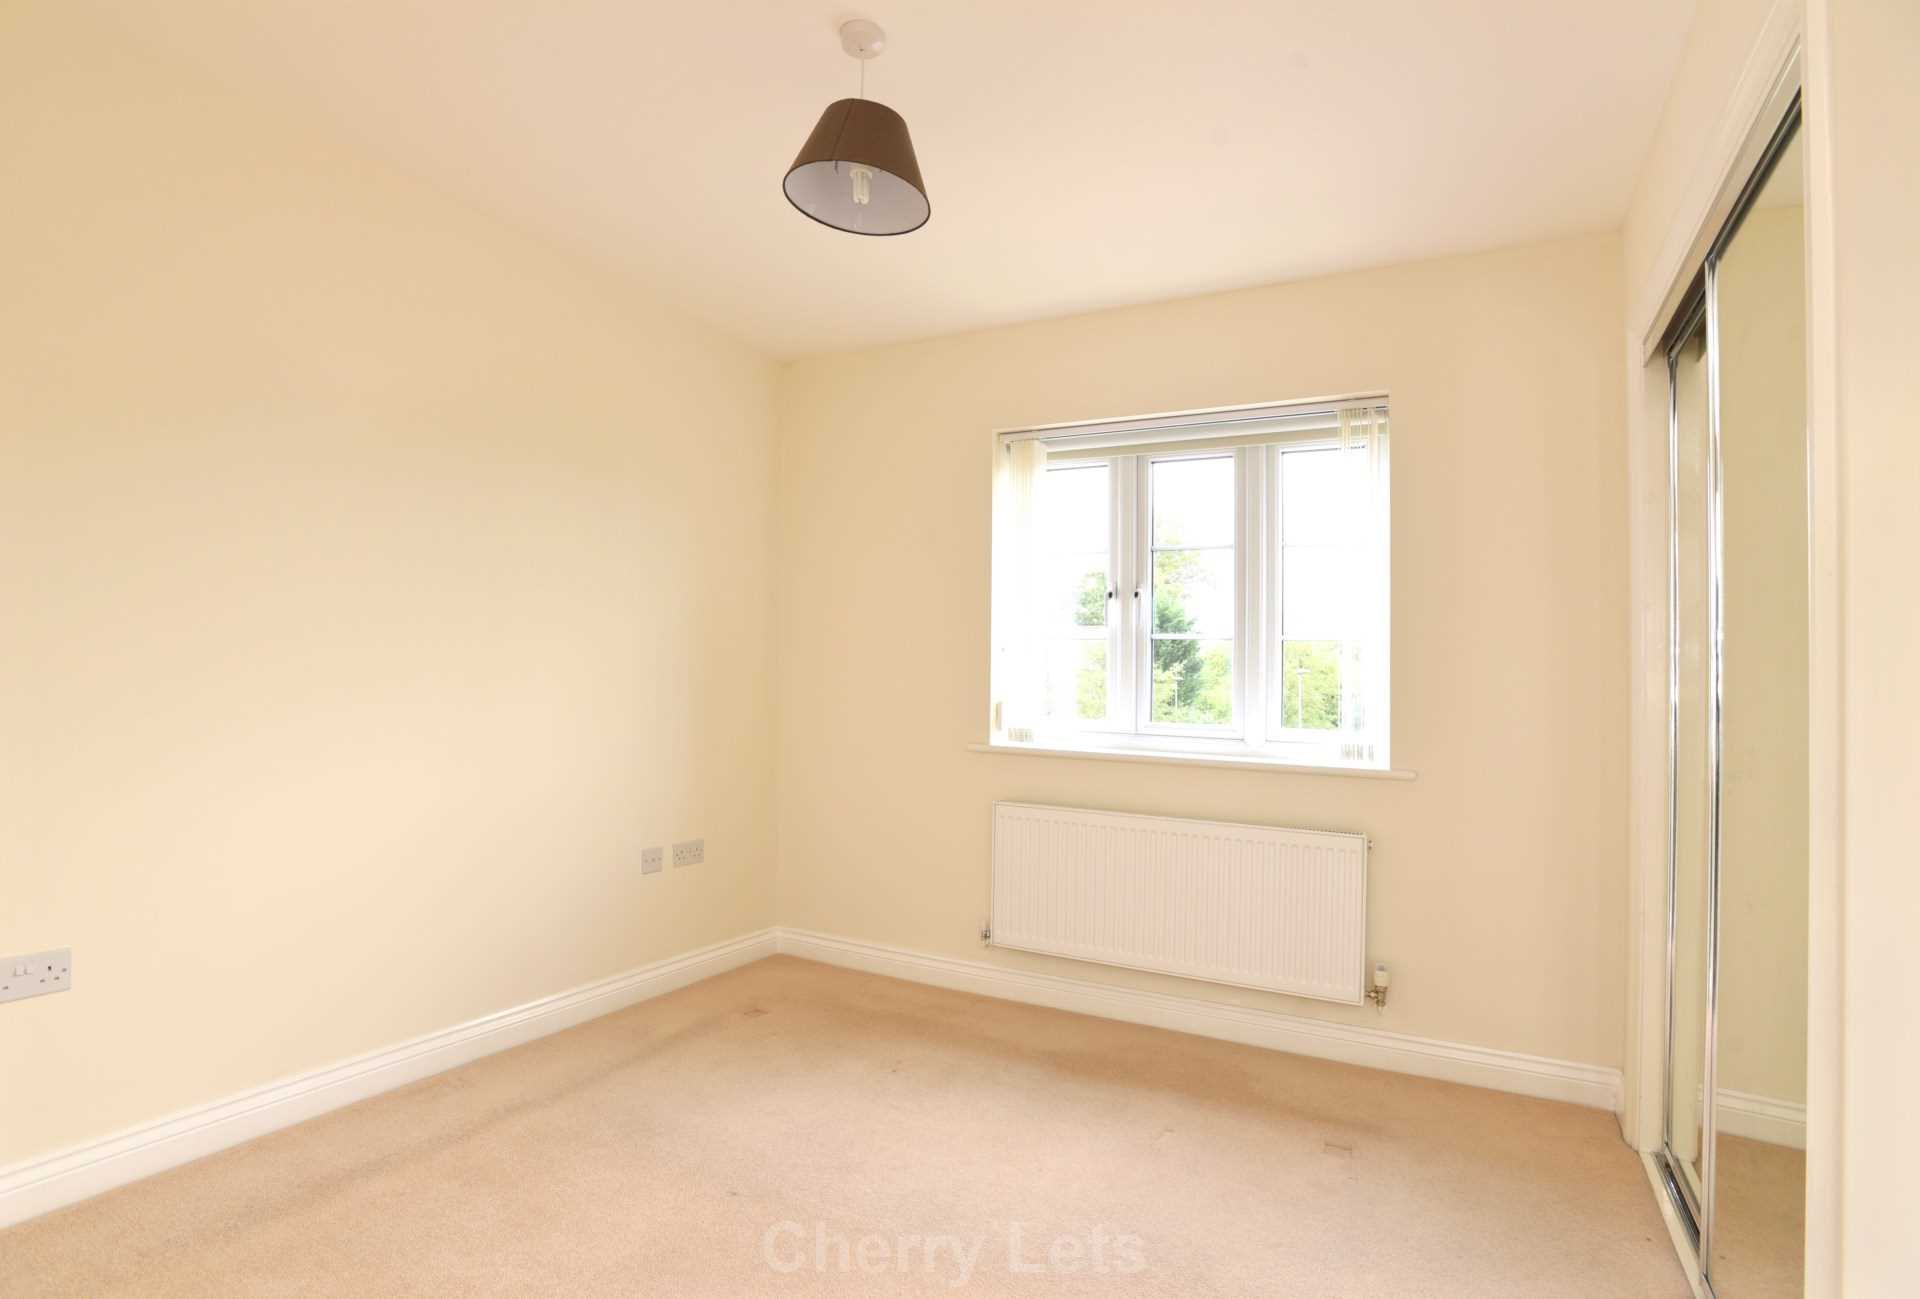 3 bed terraced house to rent in Aldous Drive, Bloxham, Banbury  - Property Image 9